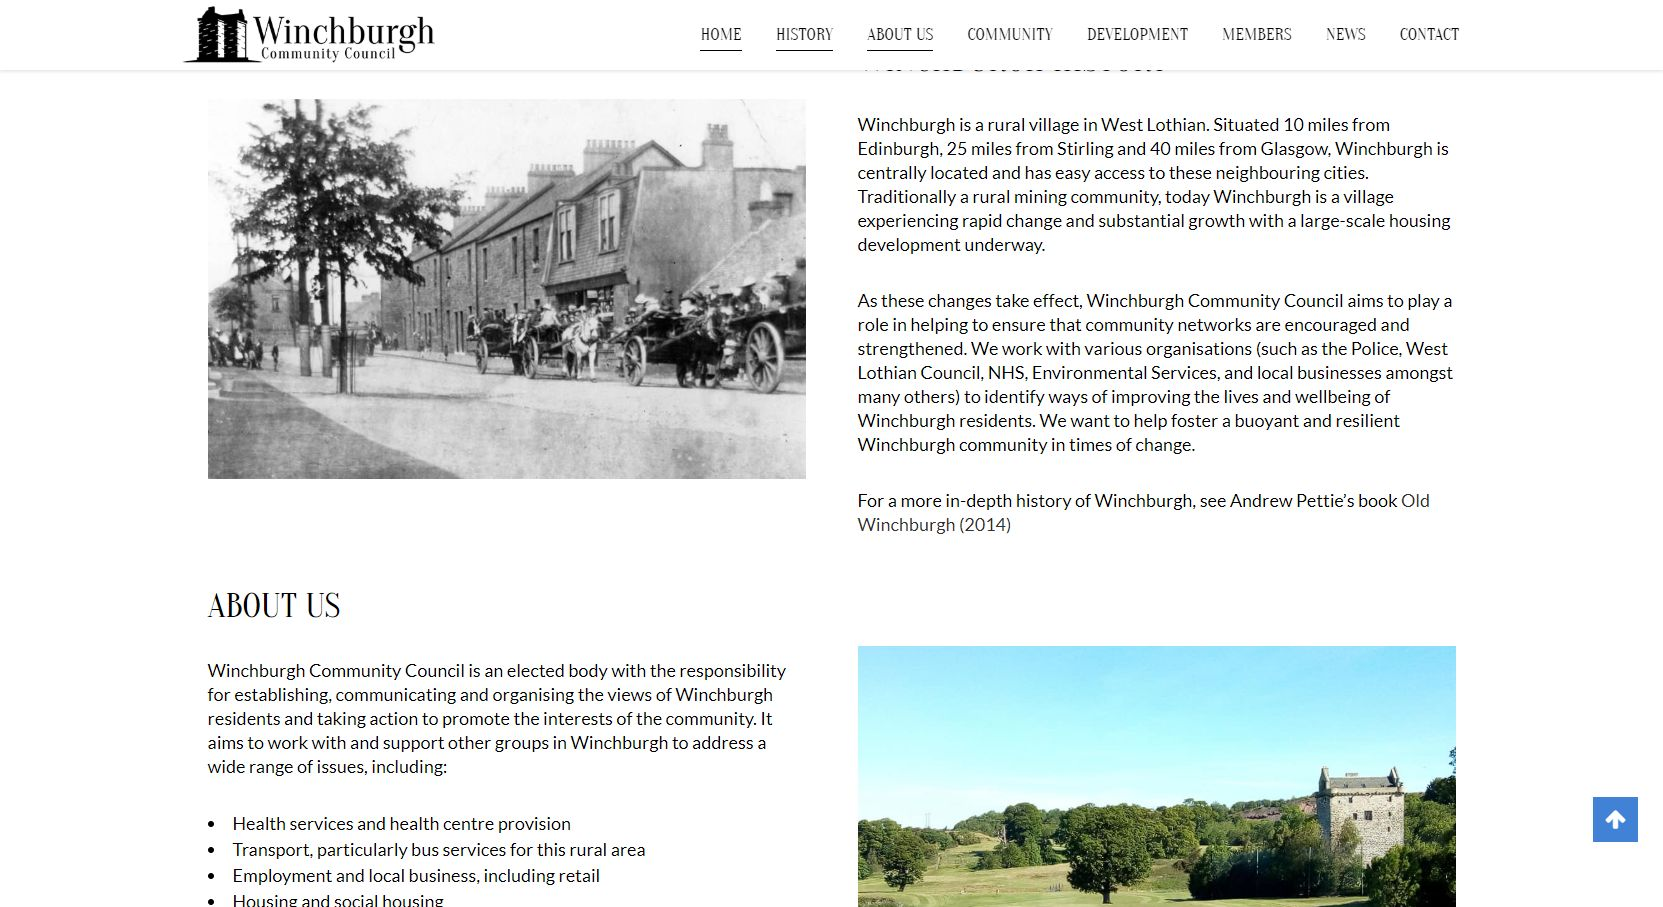 Winchburgh Community Council Homepage